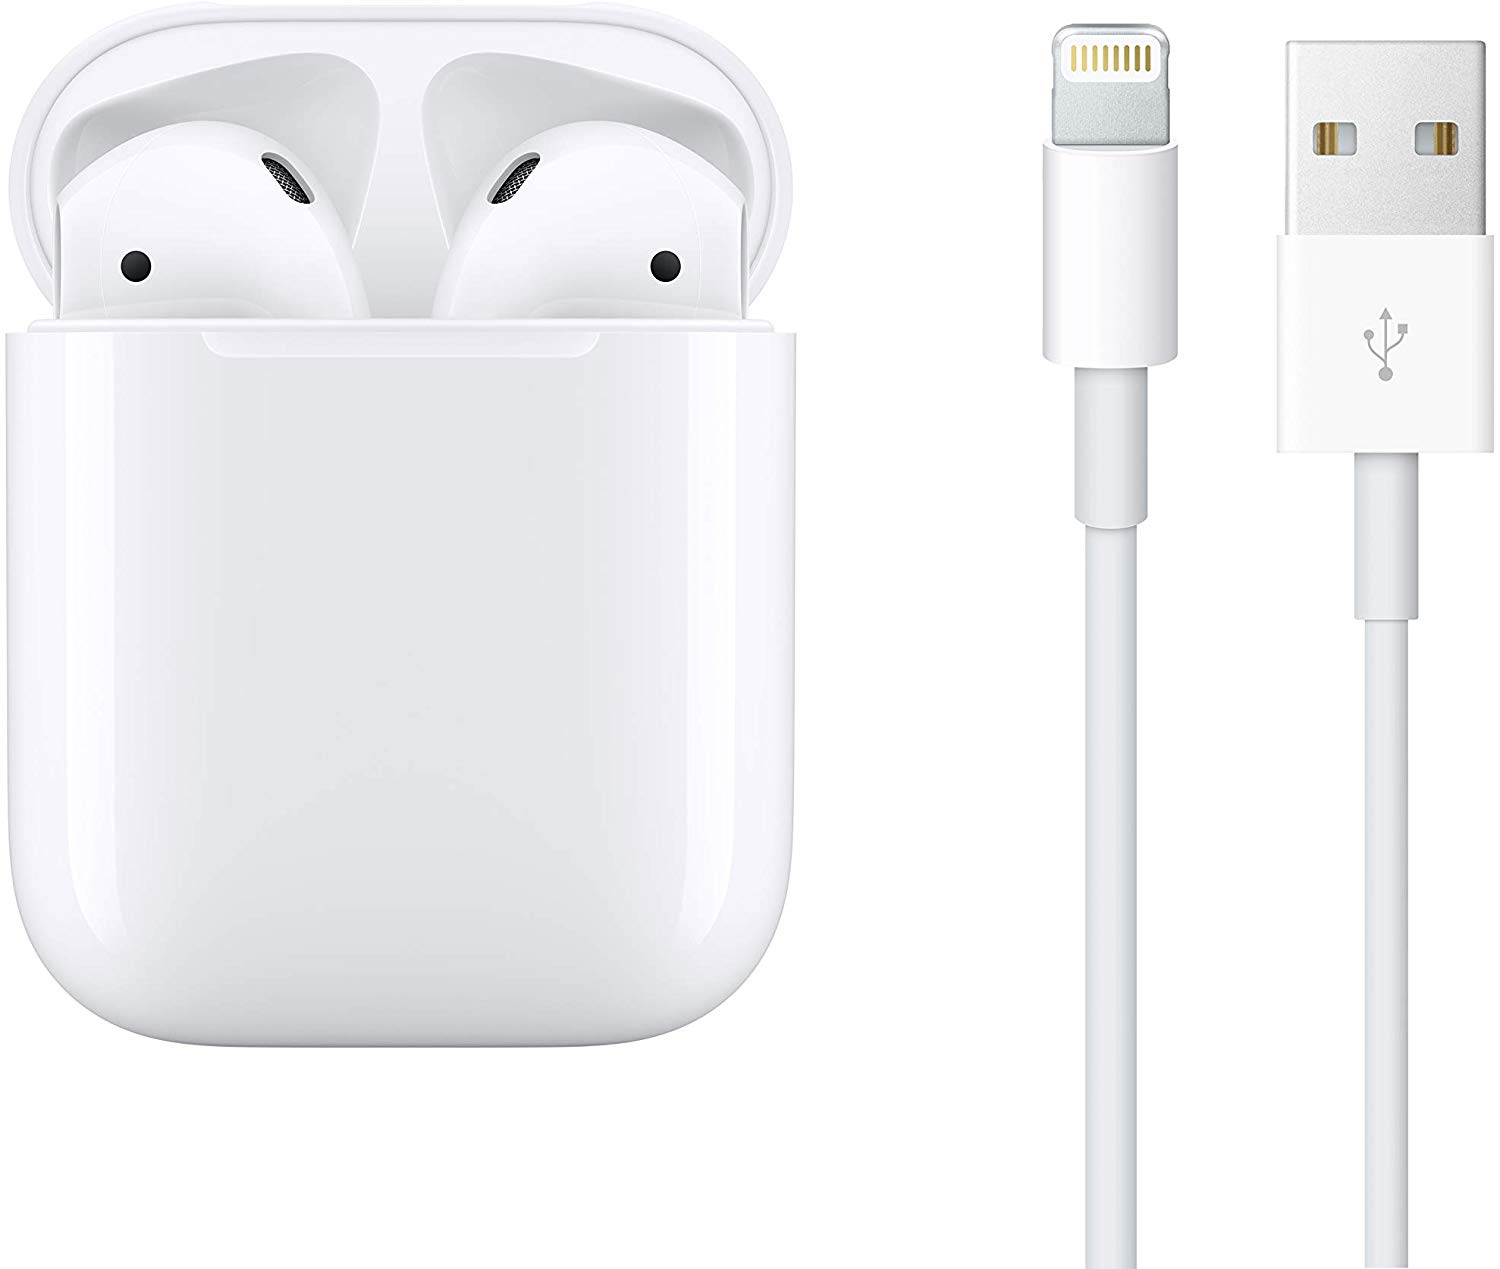 Apple Airpods with Charging Case (latest Model) for £129 Delivered on Amazon